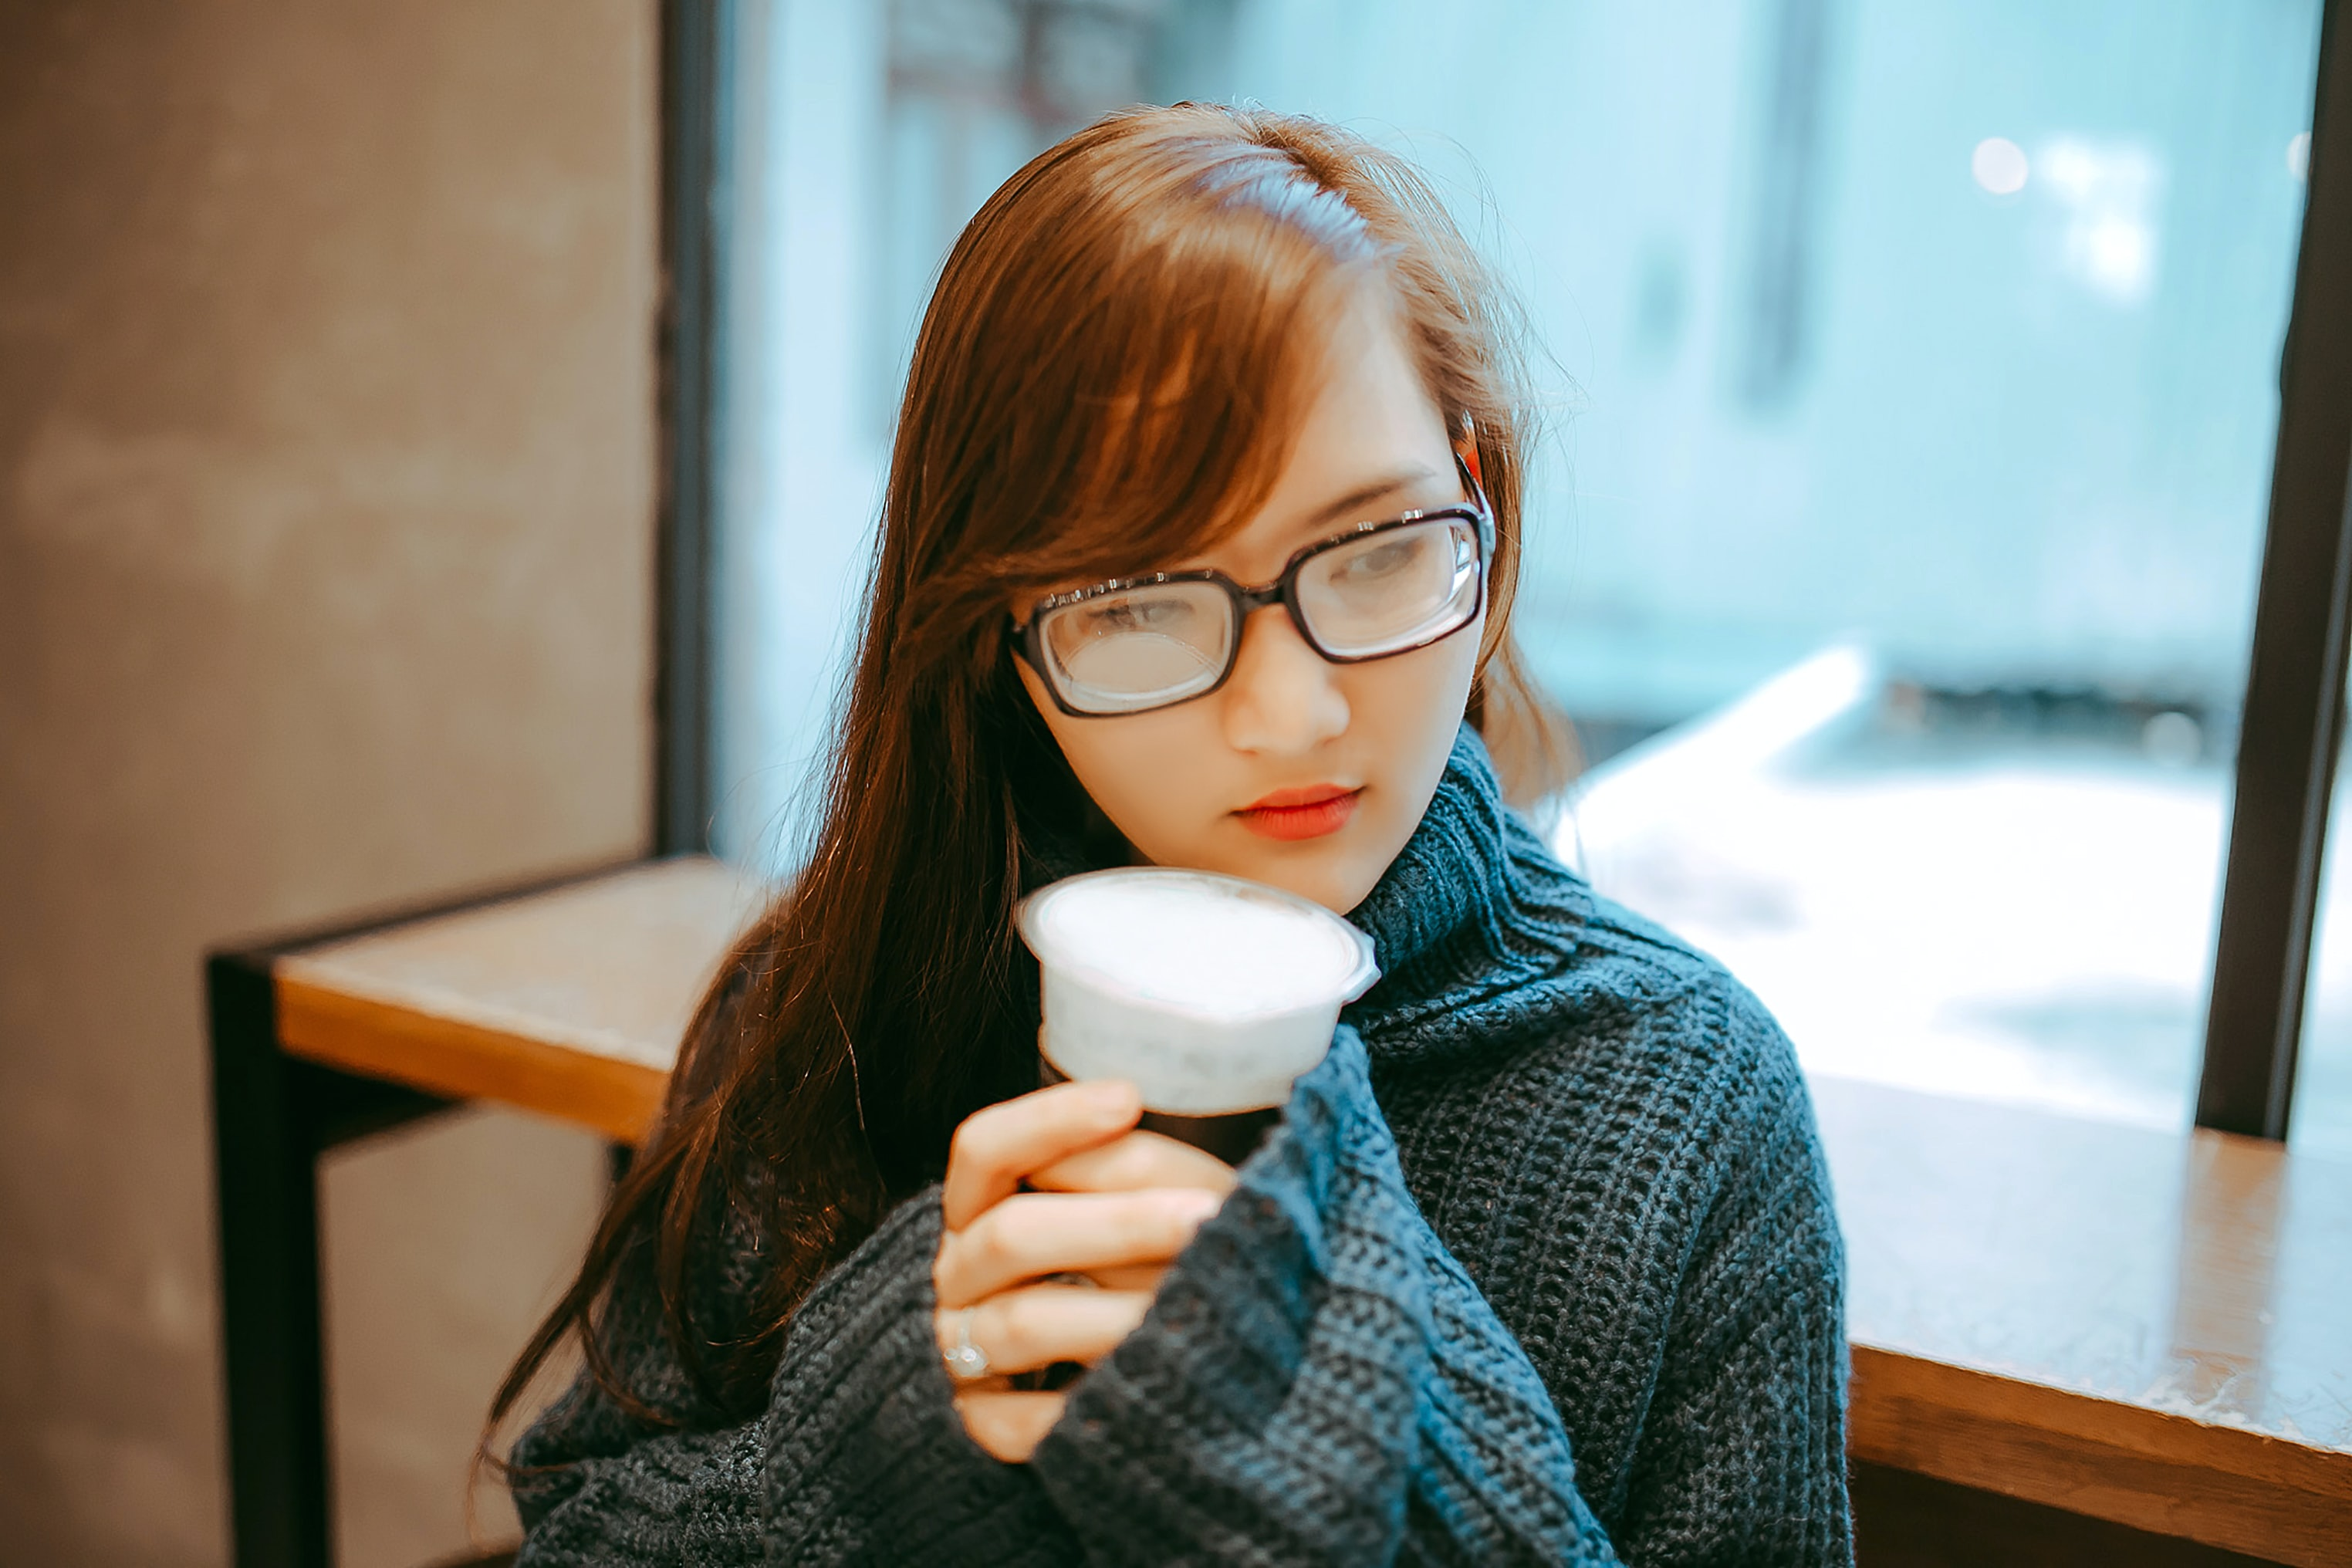 woman in gray knit jacket holding cup